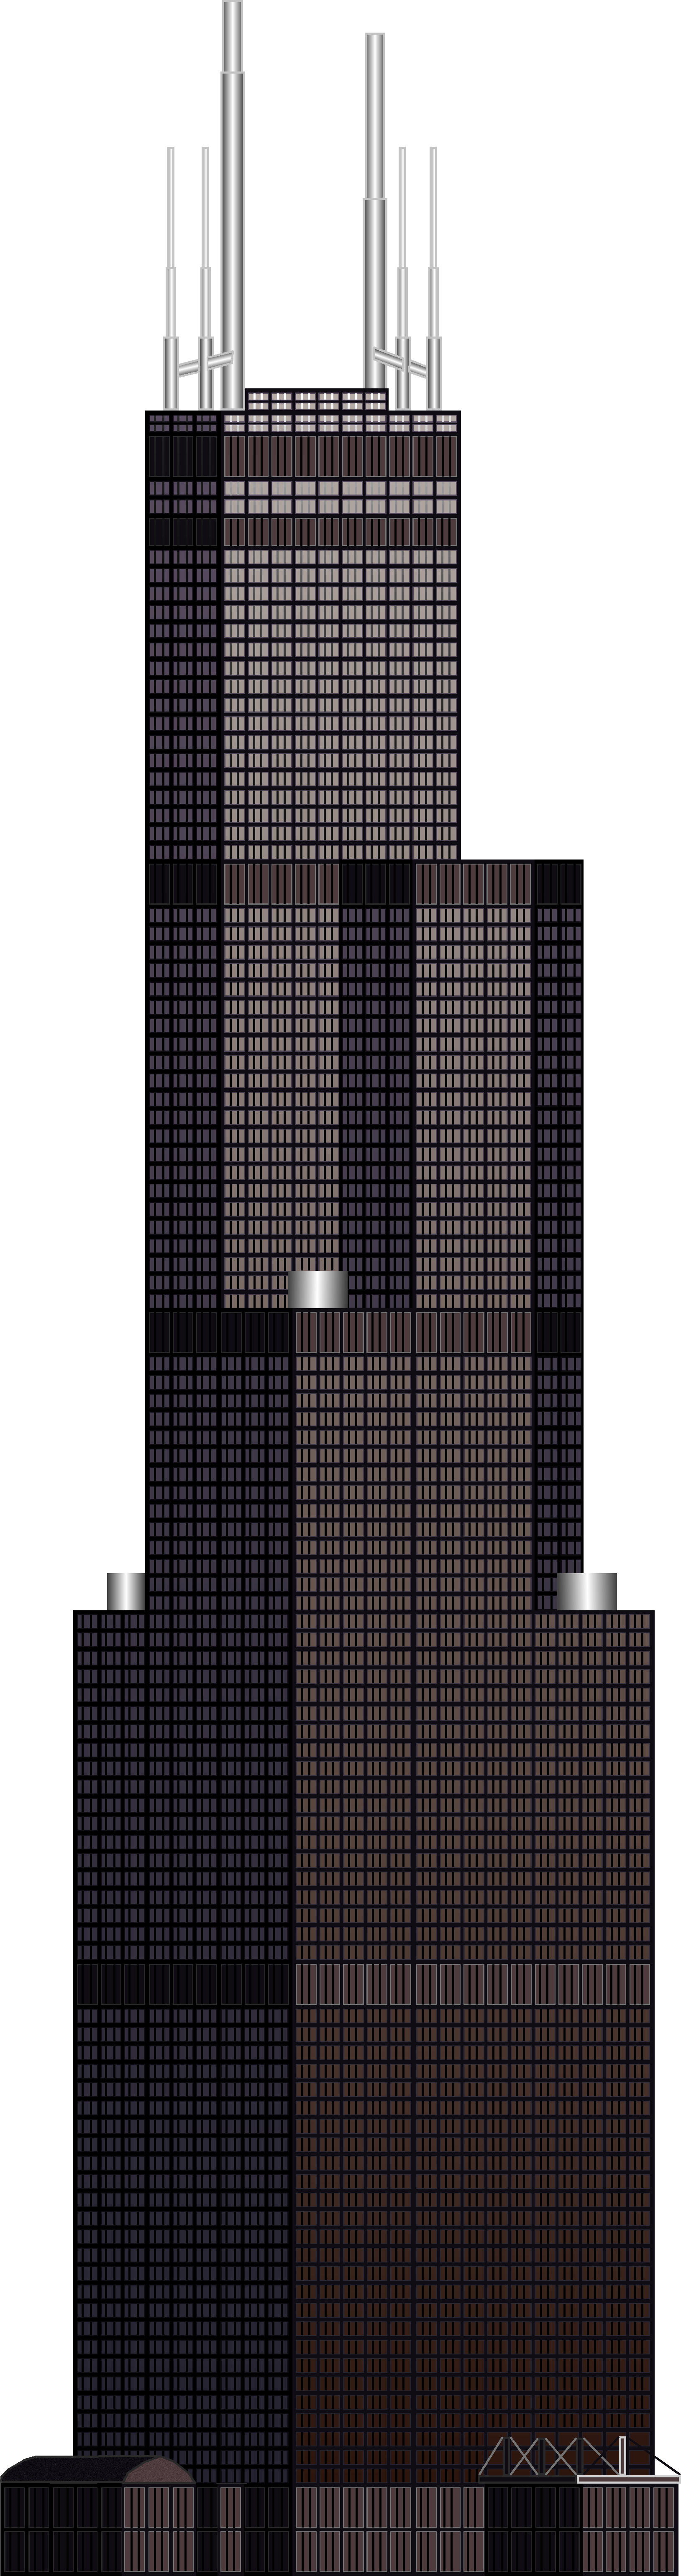 Willistower | Free Images at Clker.com - vector clip art online ...